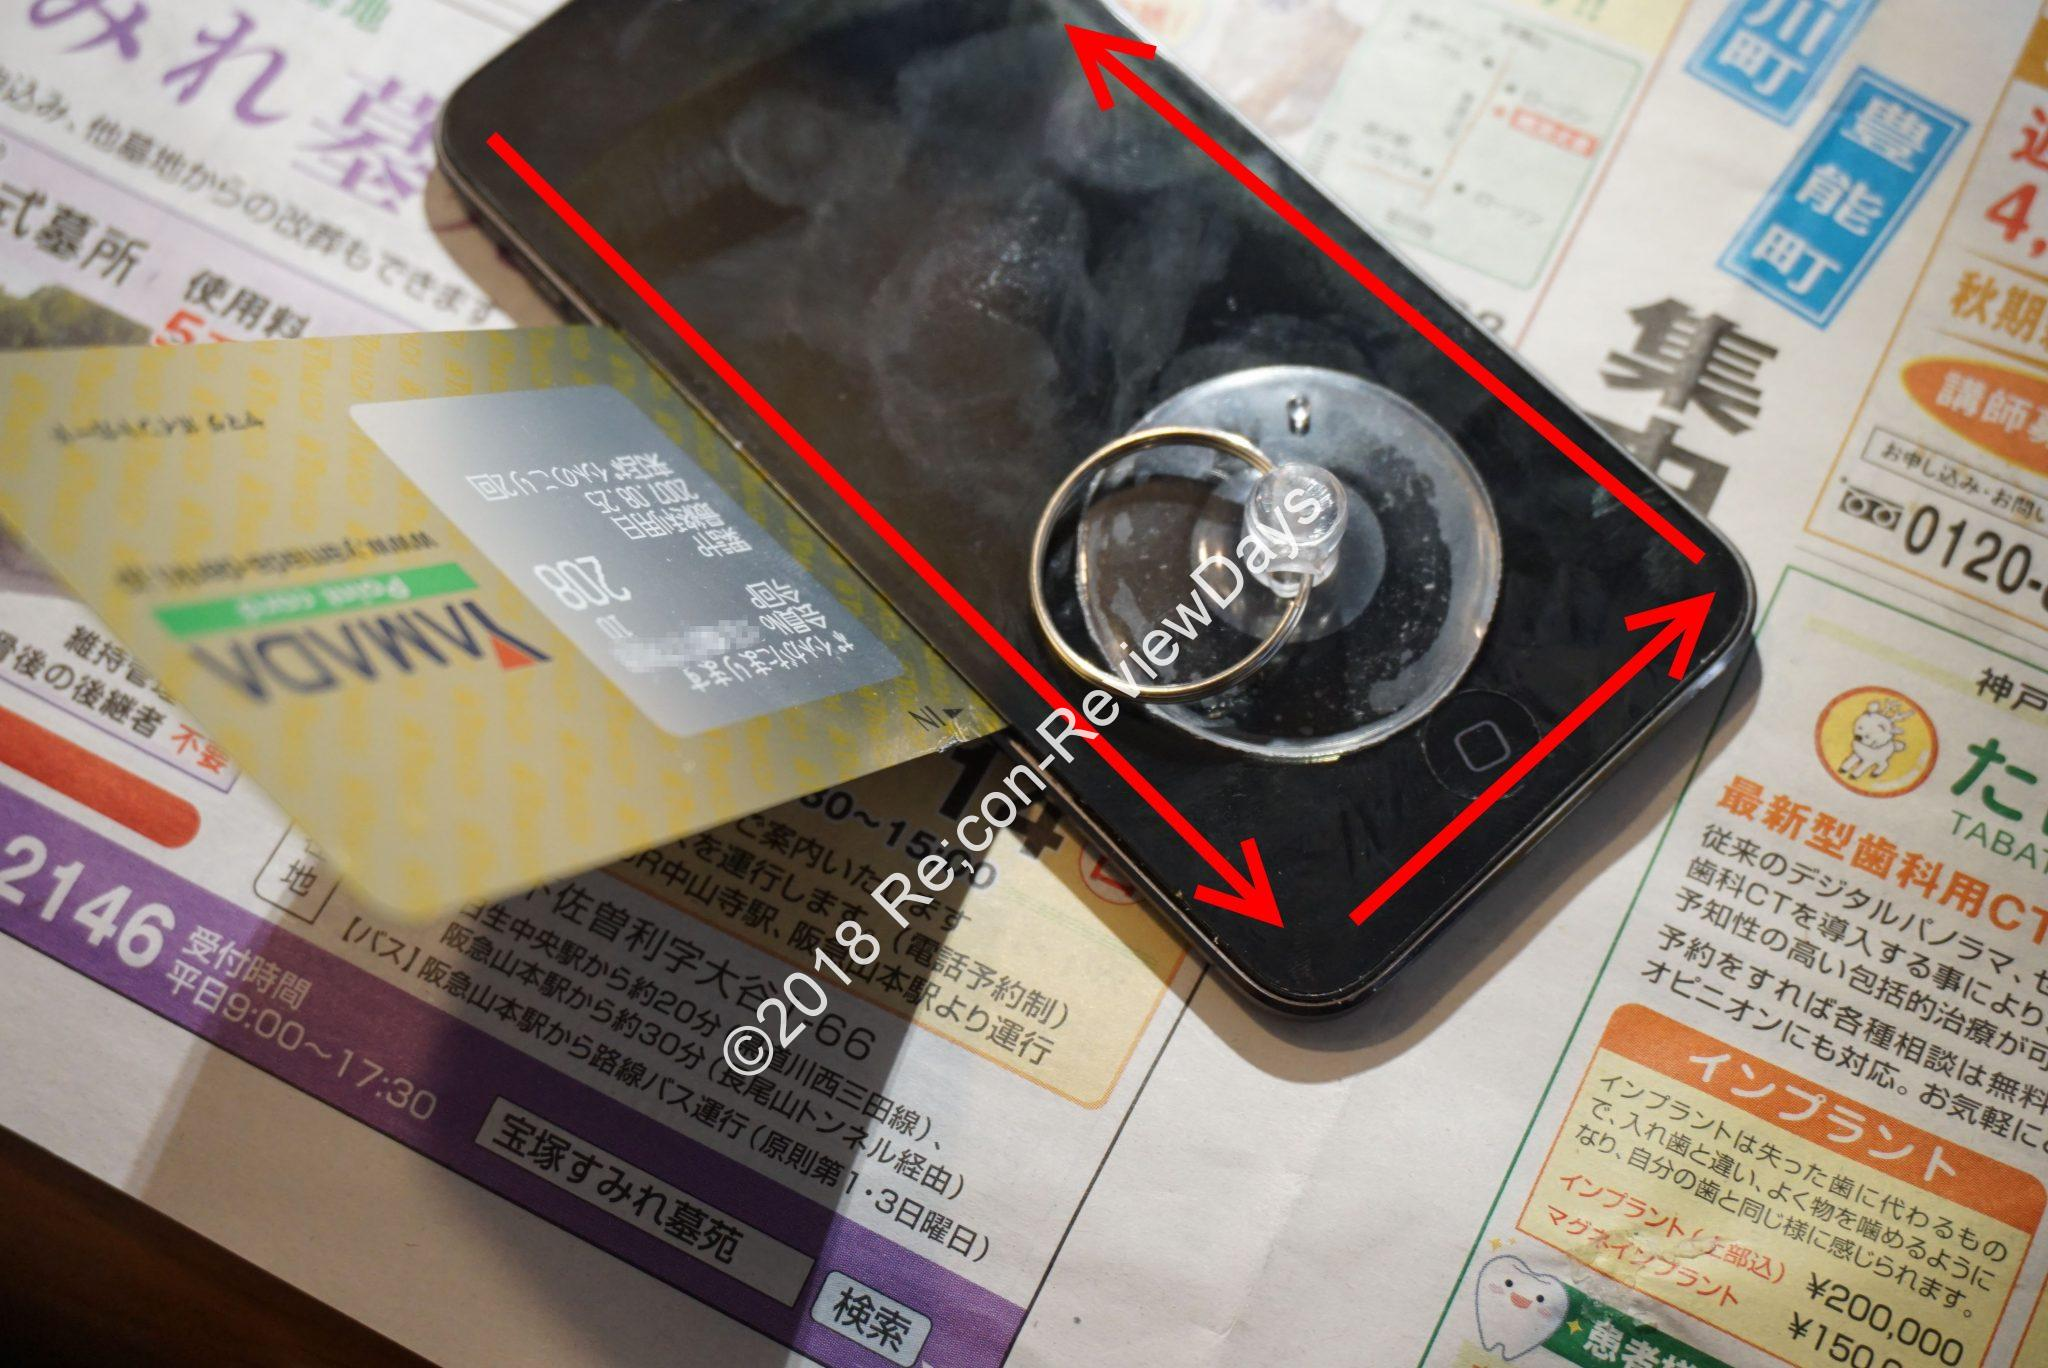 Apple iPoud Touch 第6世代のバッテリーを交換してみた #Apple #iPod #iPodTouch